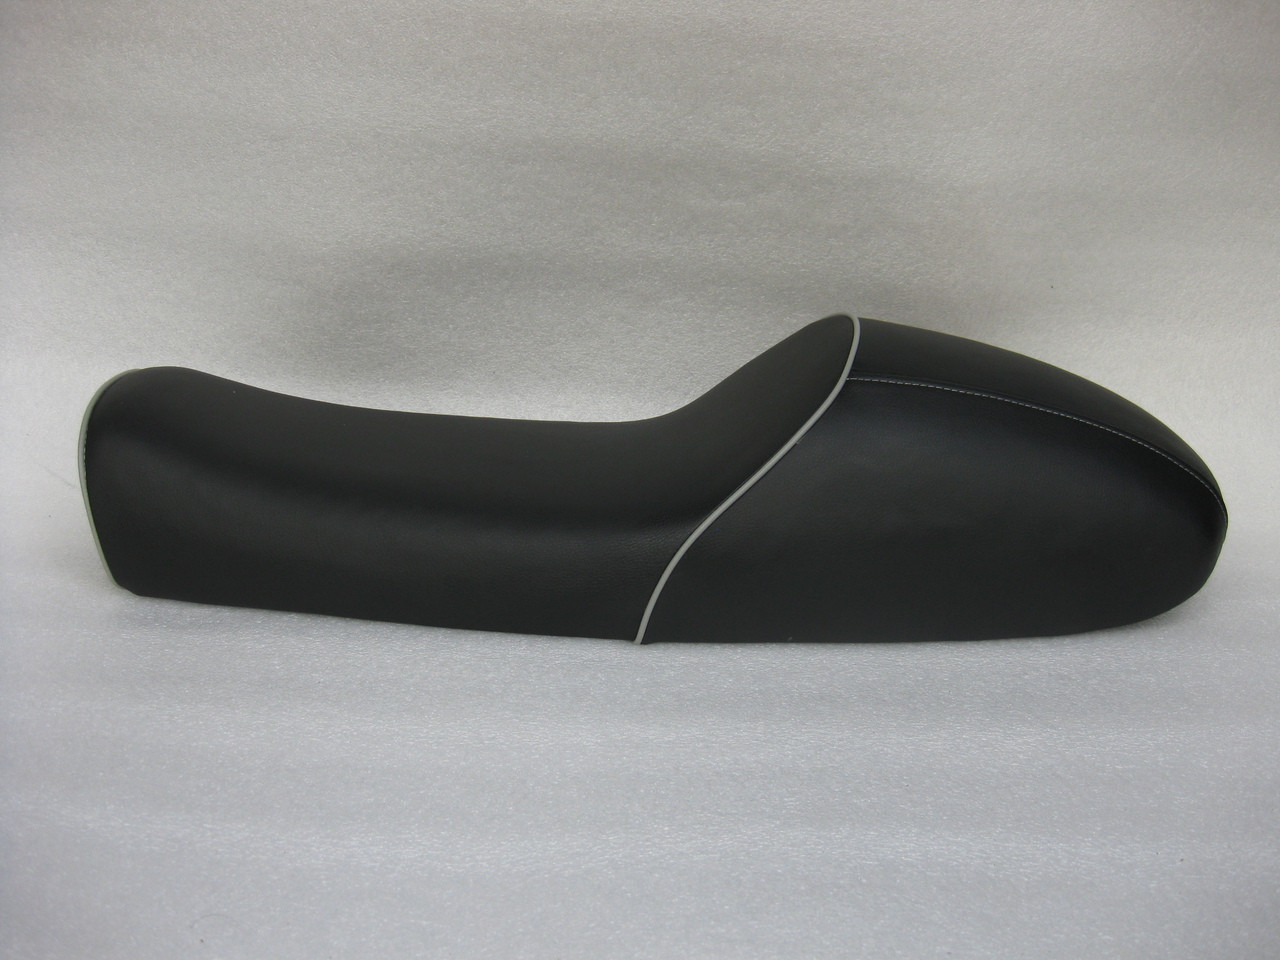 Yamaha DS7 R5 Cafe Racer Complete Motorcycle Seat #4366